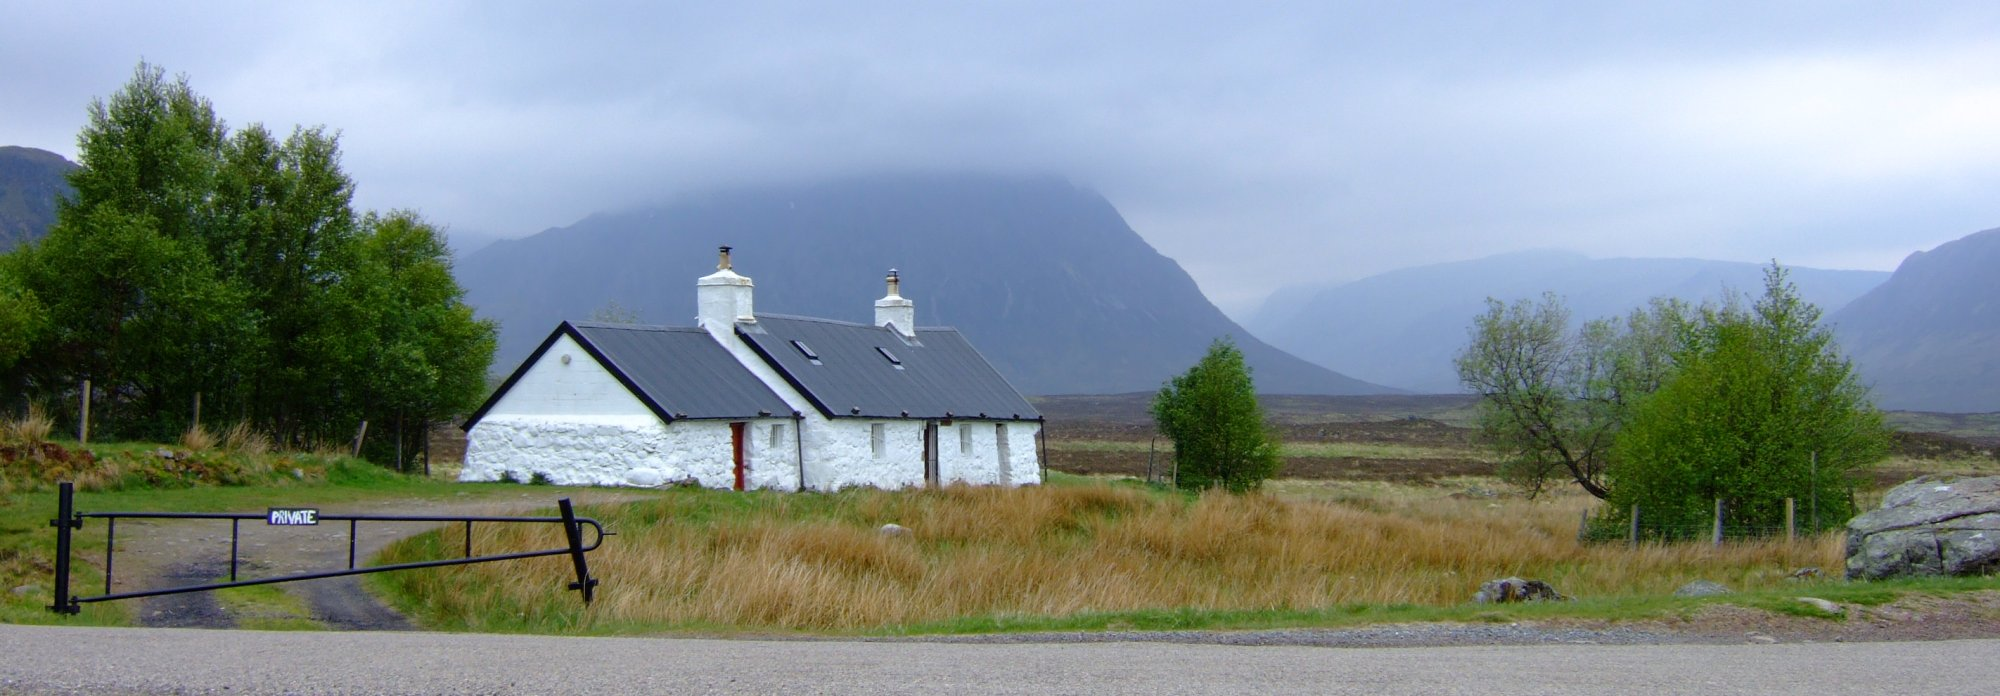 Every WHW journal has to have a picture of Blackrock Cottage - it's compulsory isn't it?